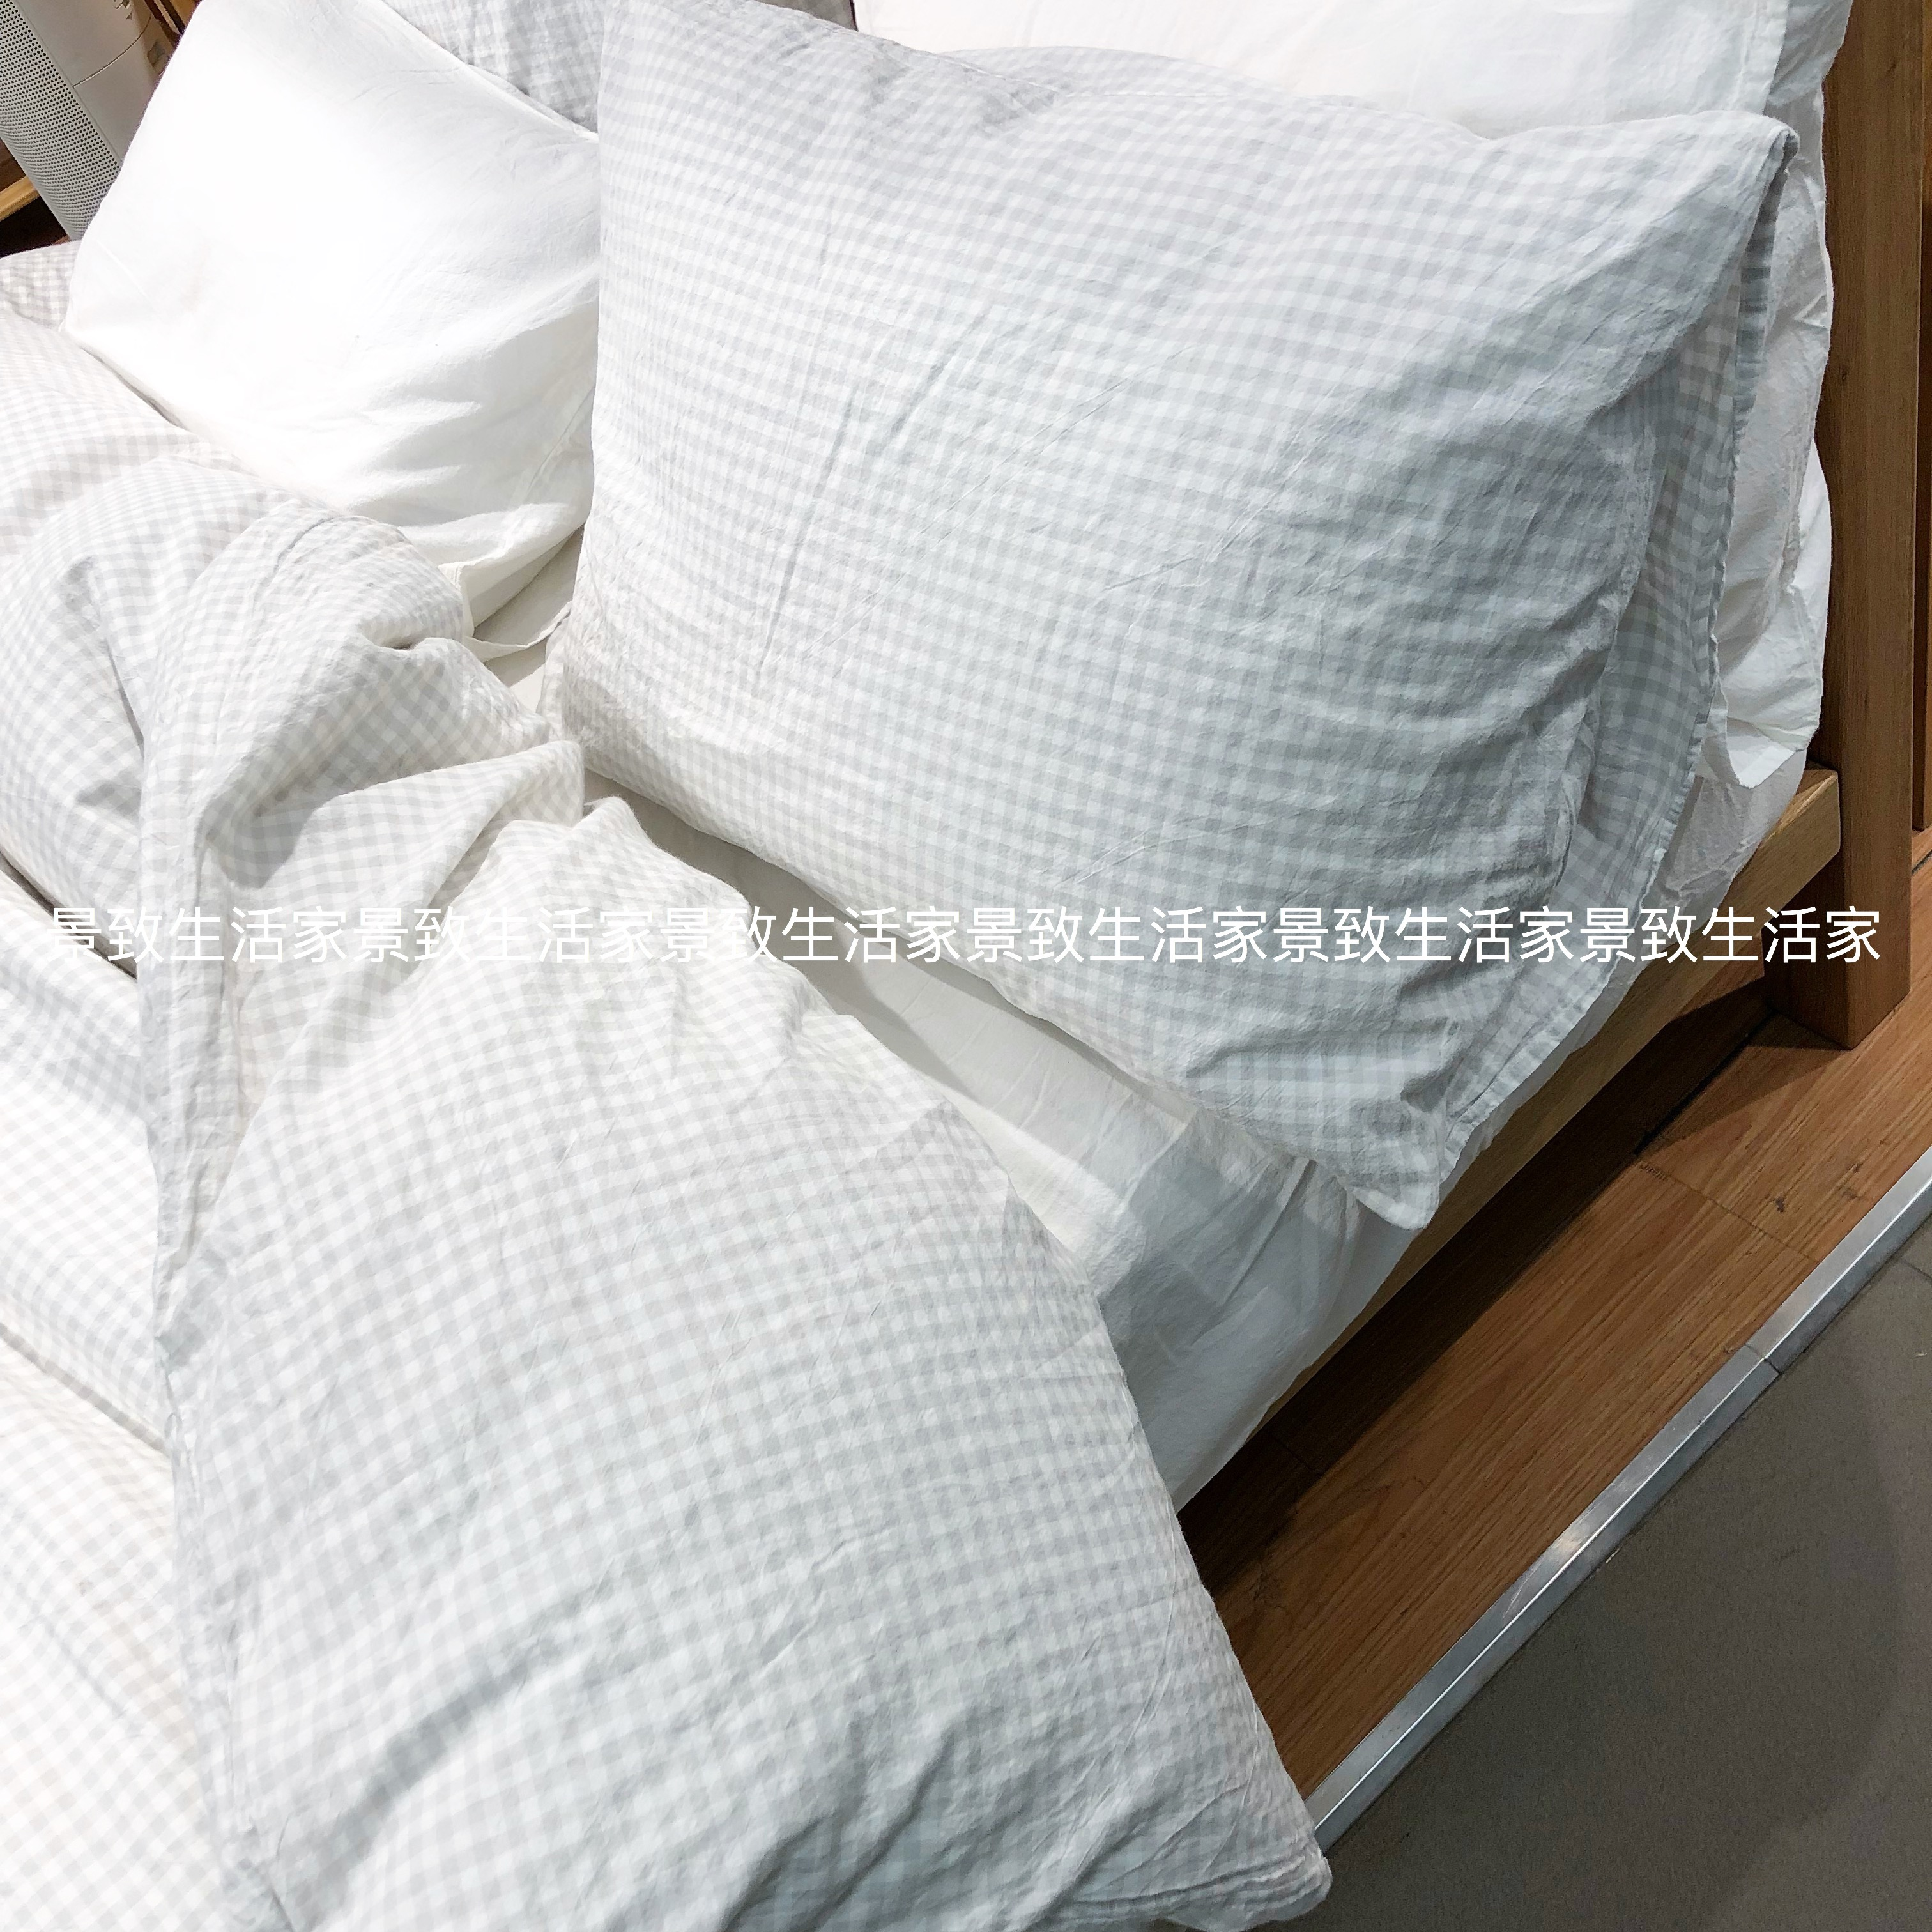 Muji Bed Sheets Muji Washed Cotton Bedding Pillowcase Cotton Pillowcase Solid Color Check 43 63 50 70cm Domestic Purchasing